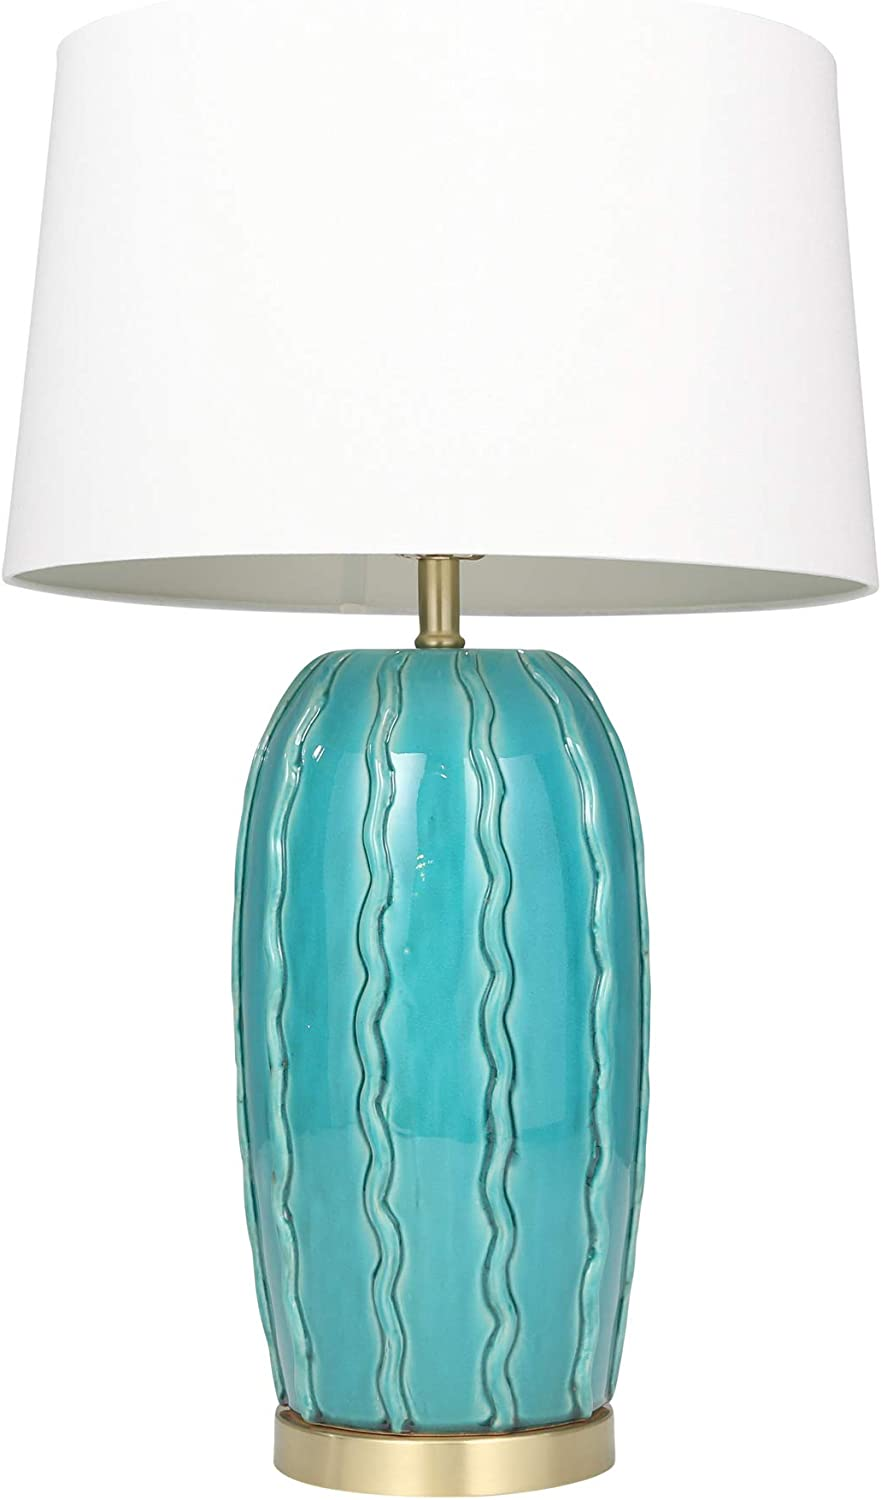 Sagebrook Home 50209 03 Ceramic Ribbon Table 31 Lamps Turquoise Teal